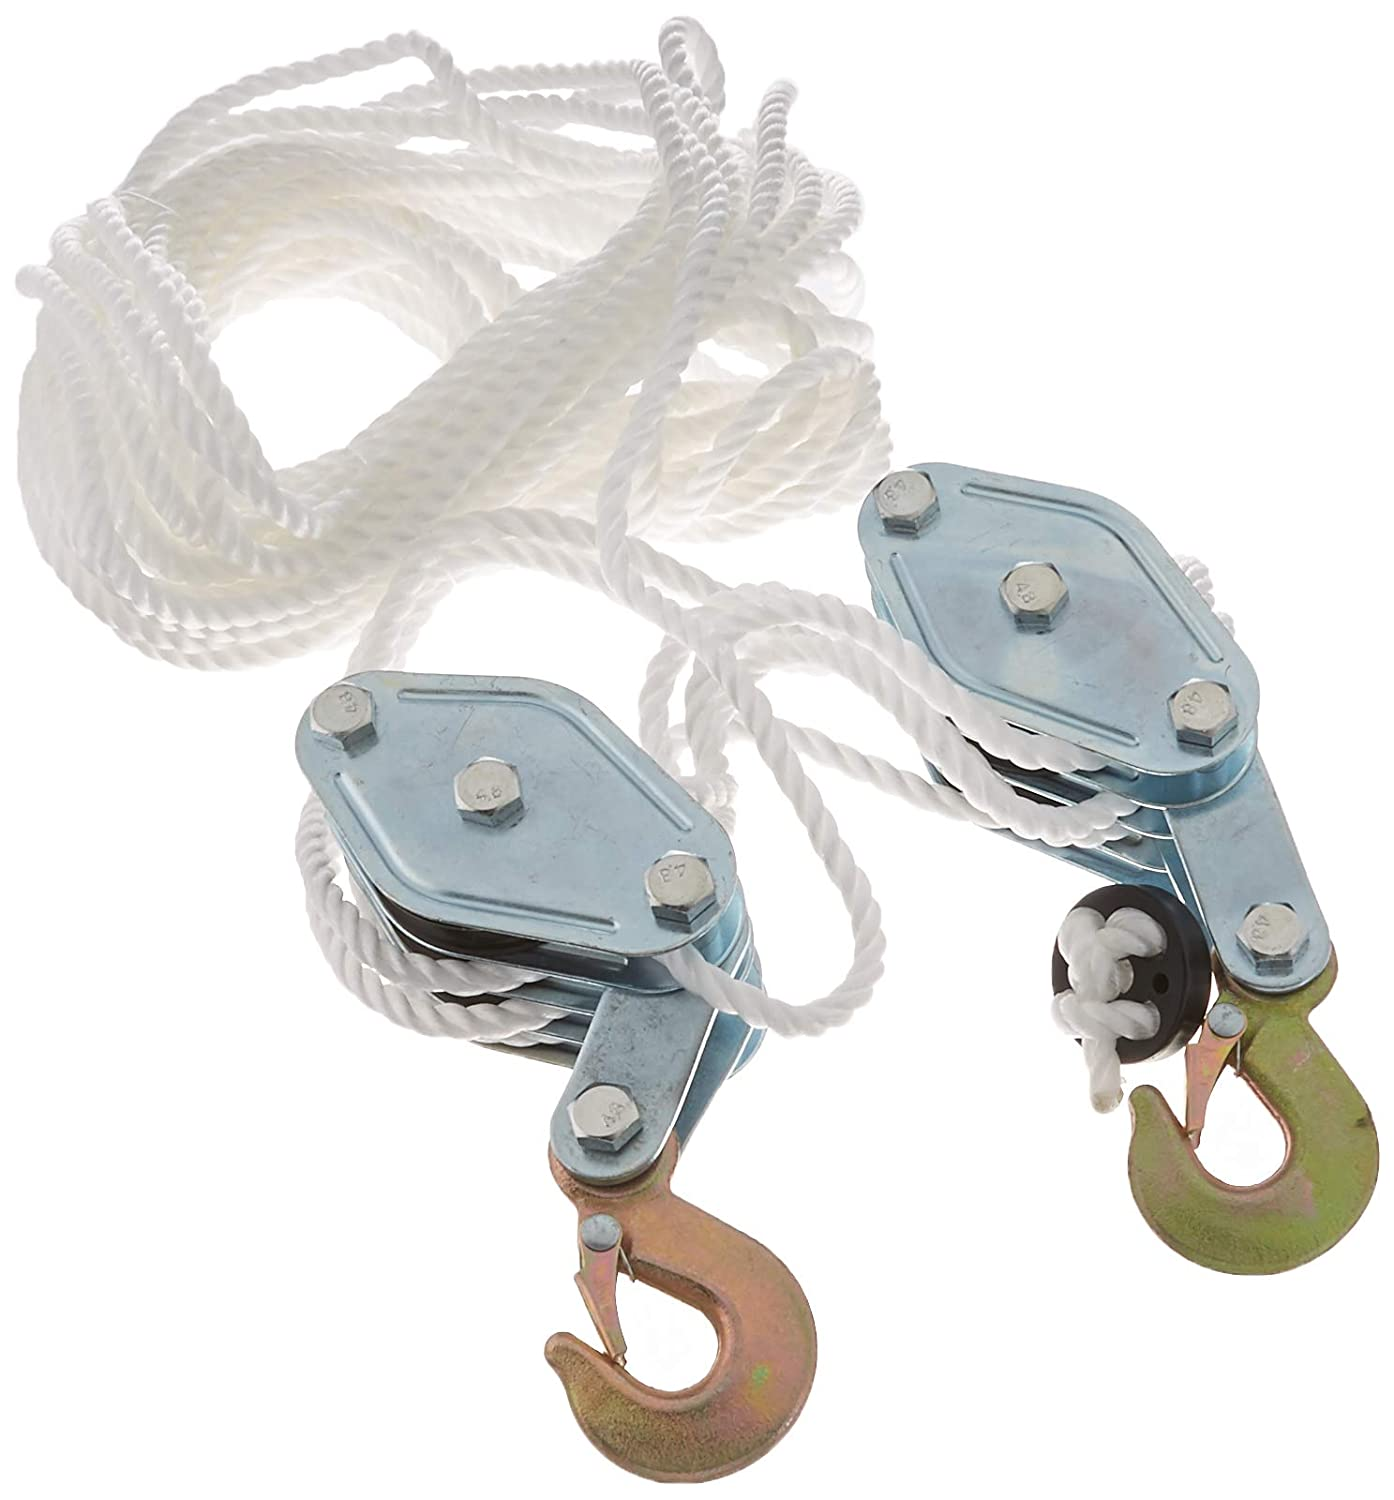 J&R Quality Tools B001Z0WELC 2048872 Generic Rope Pulley Block and Tackle Hoist EJMUSIC